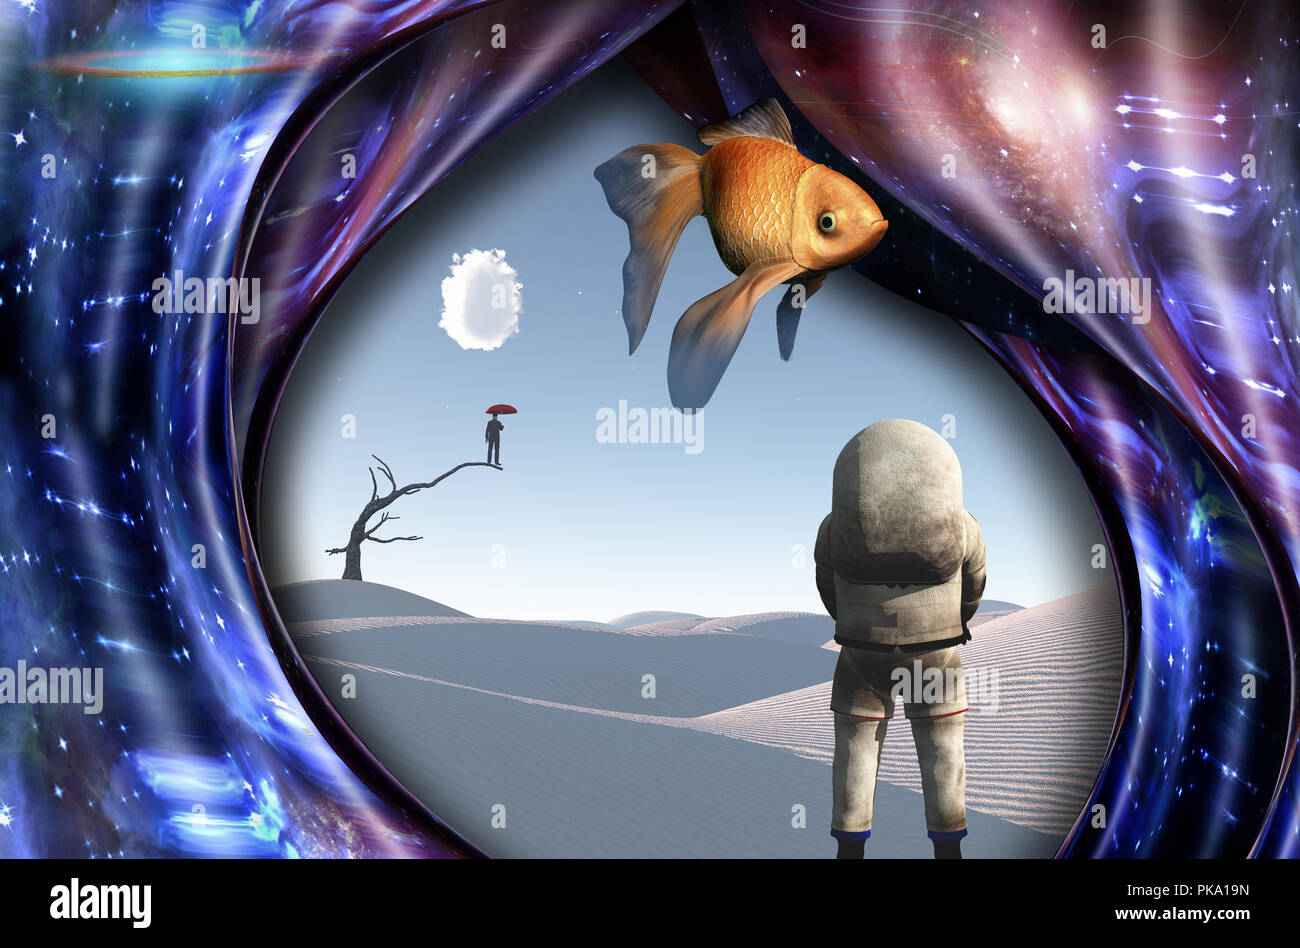 Surrealism. White desert. Man with red umbrella stands on a dry tree. Astronaut. Warped space. Golden fish. - Stock Image